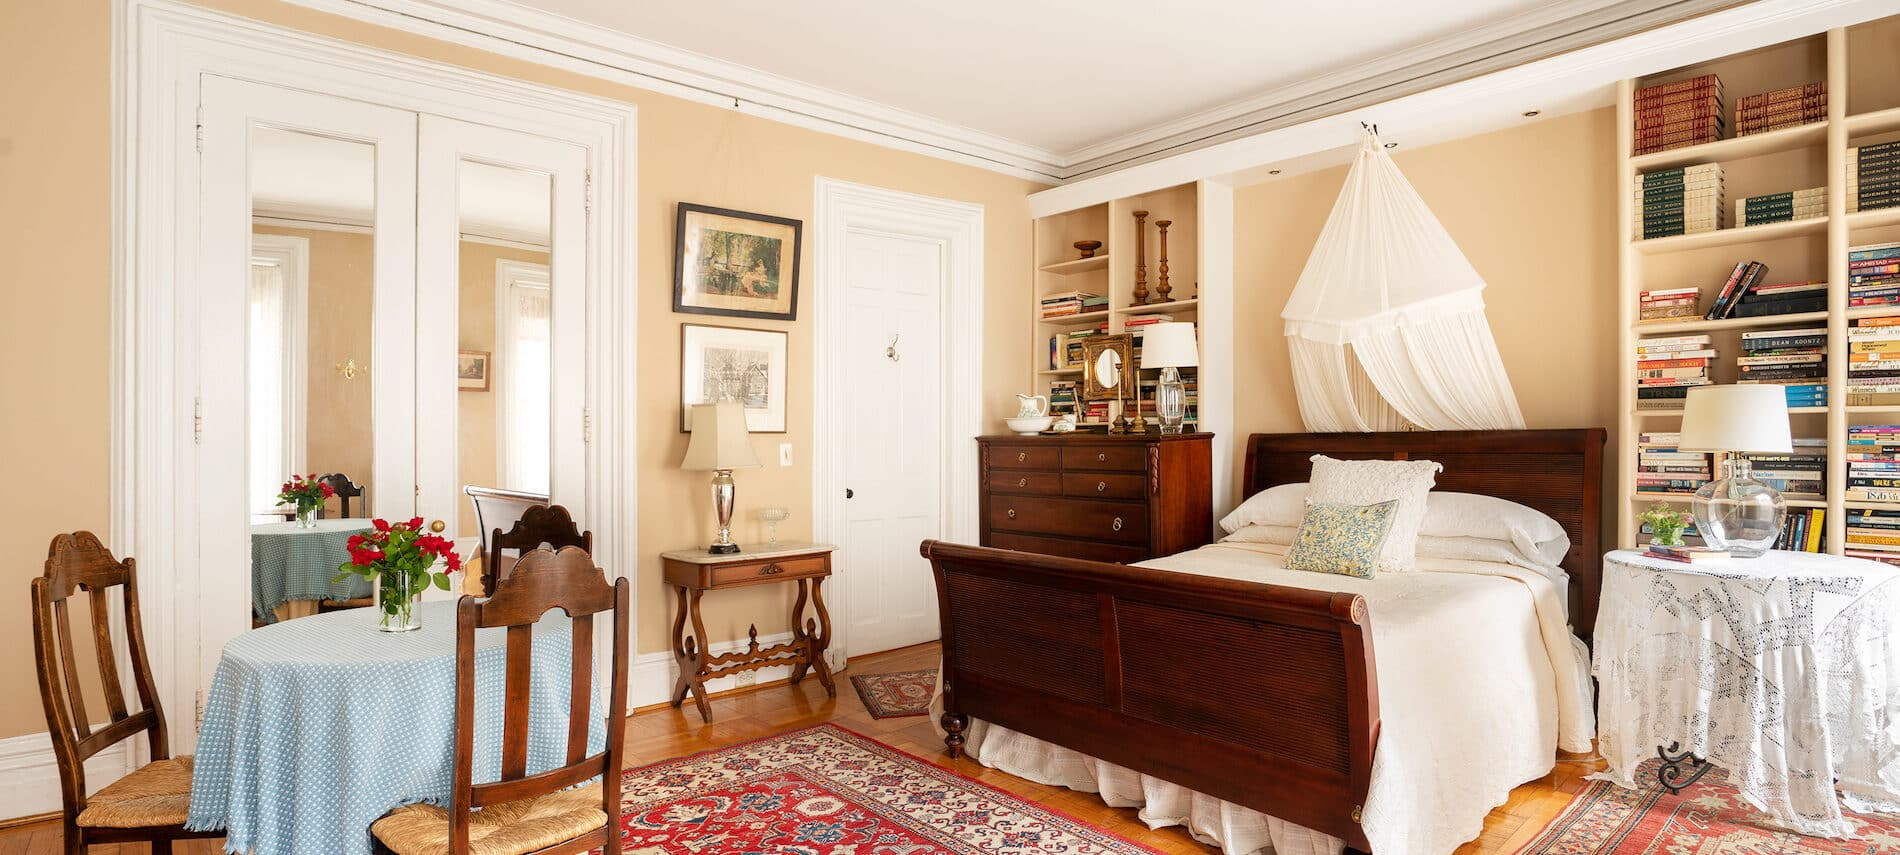 Bedroom with beige walls. Dark wood sleigh bed. White coverlet and mosquito netting.